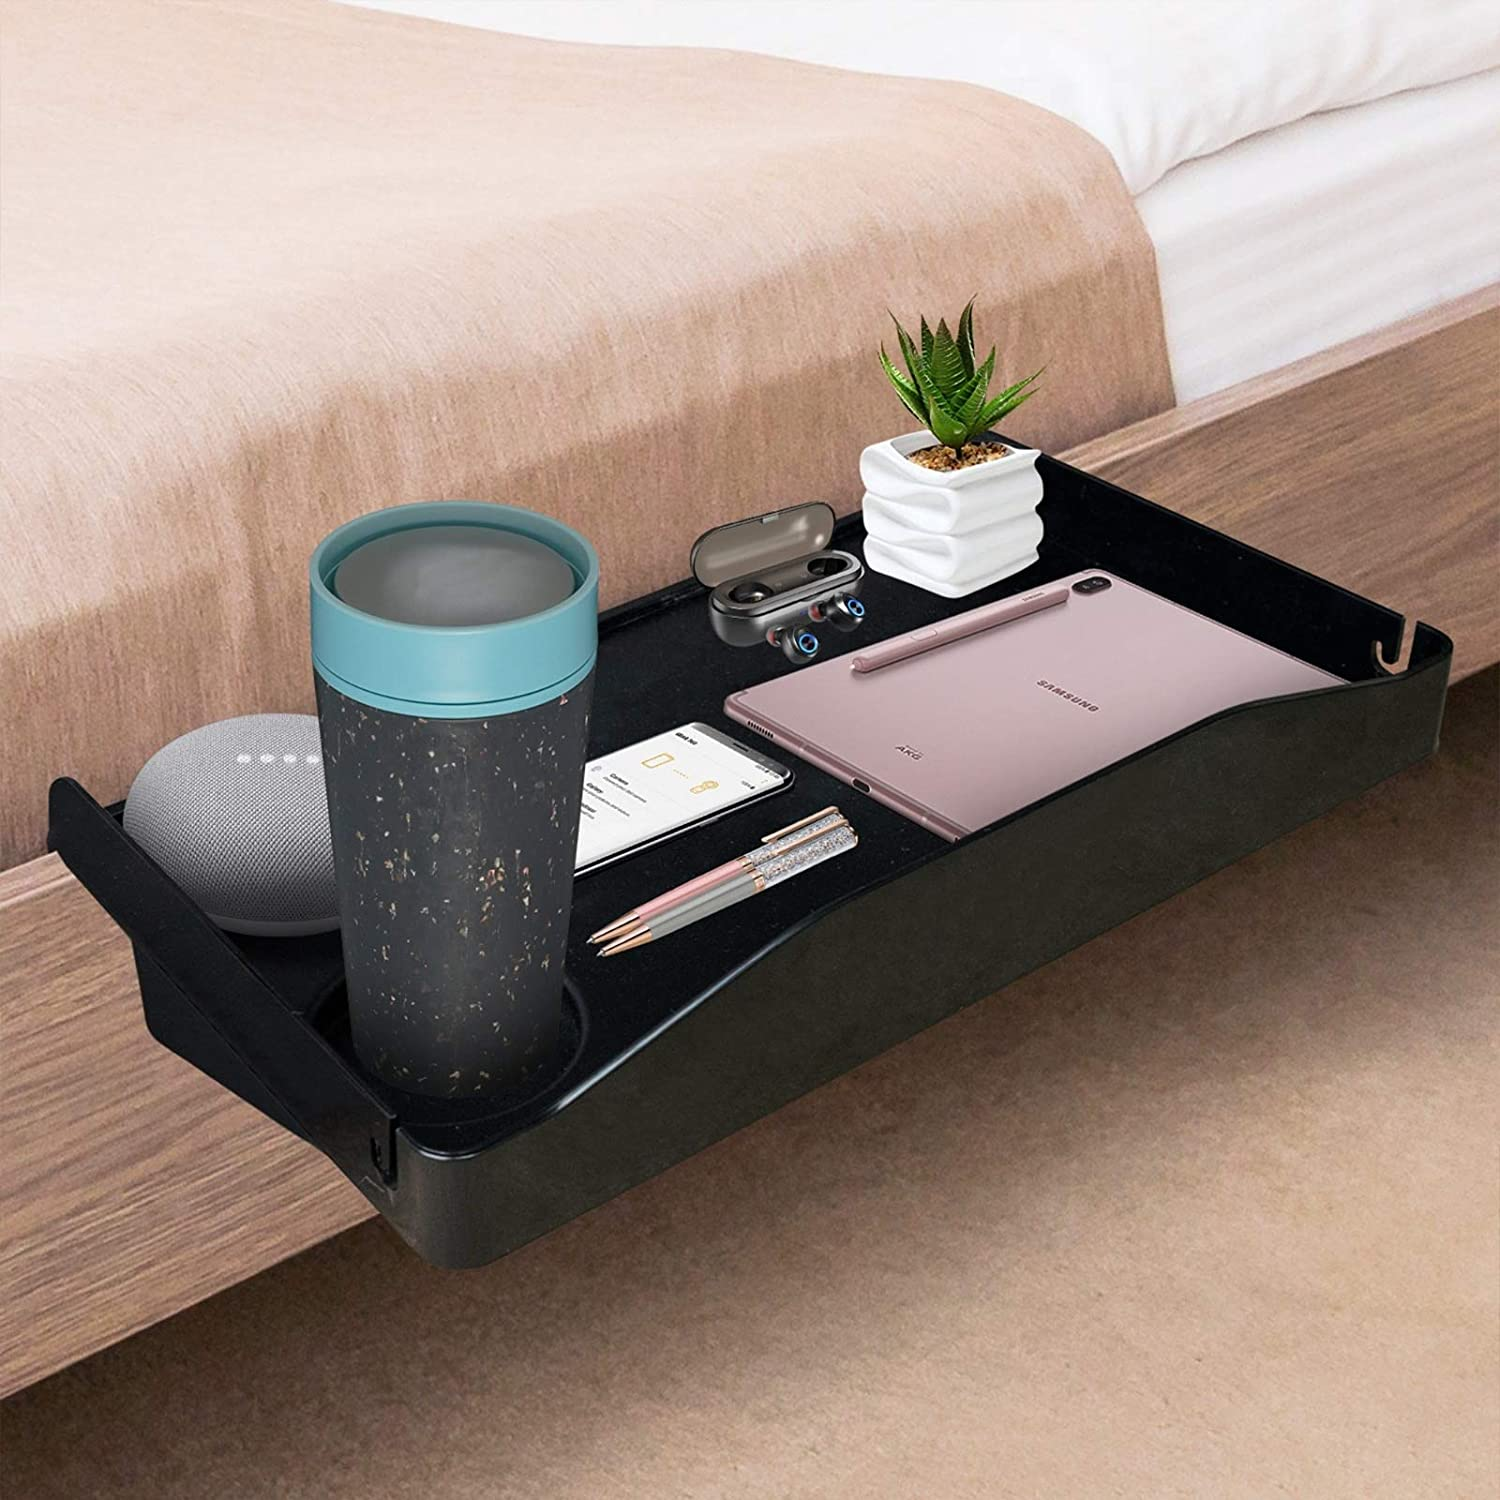 Bedside Shelf for Bed, Side Organizer Attachment Tray for Bunk Bed, Clip On Night Stand with Cup Holder